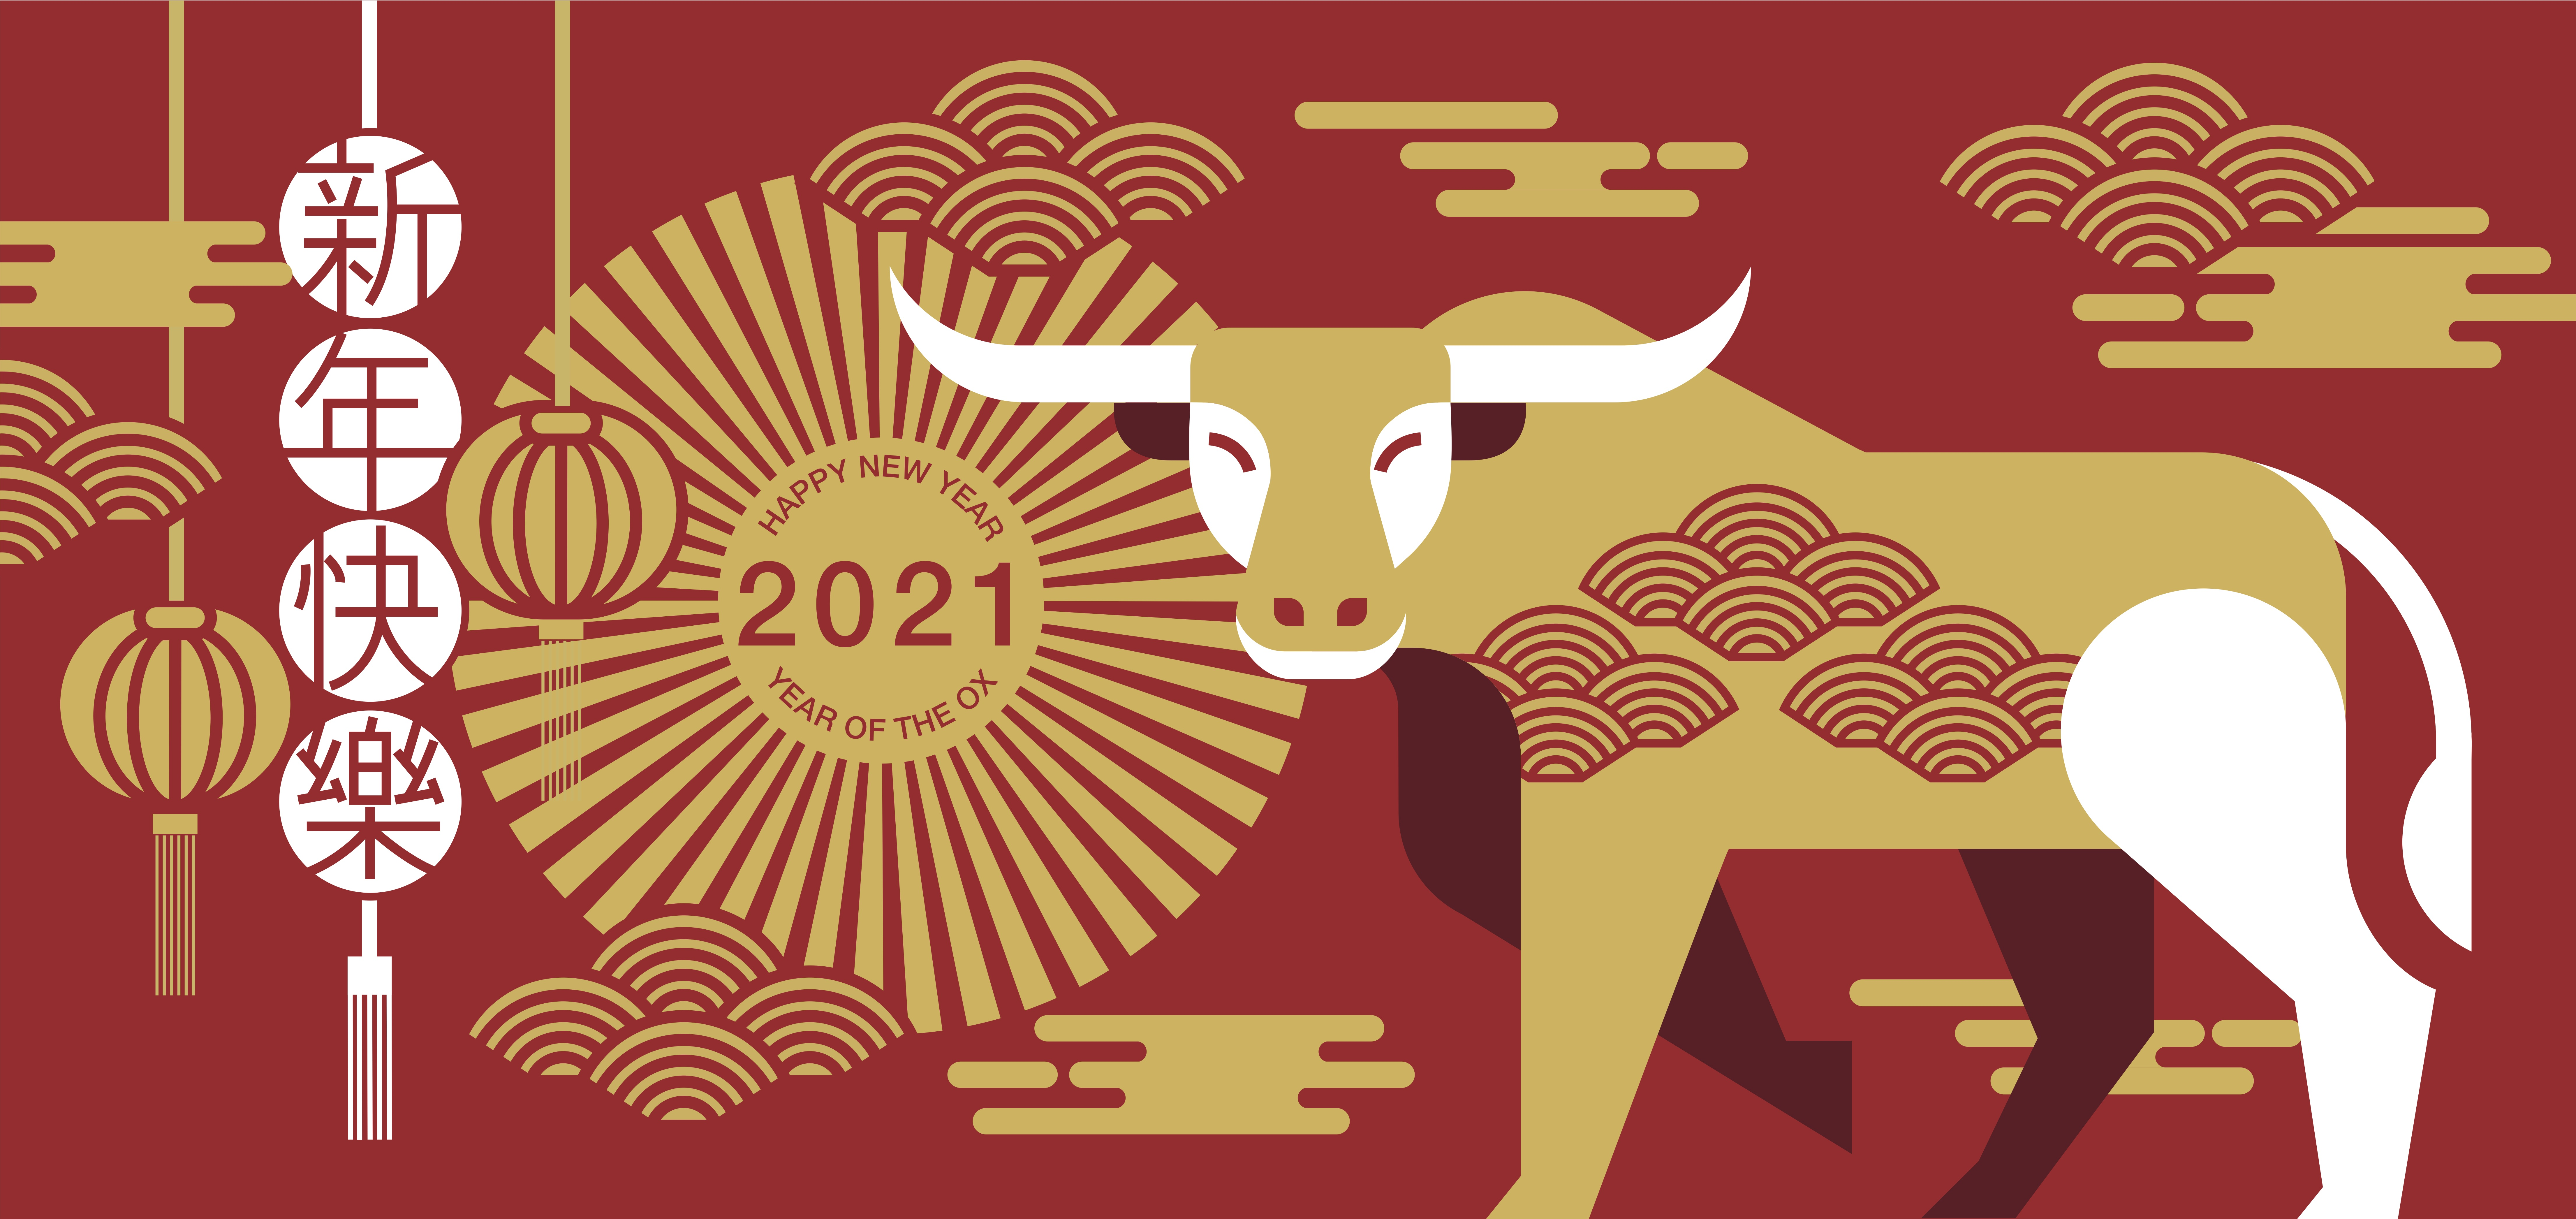 2021 - Year of the Ox